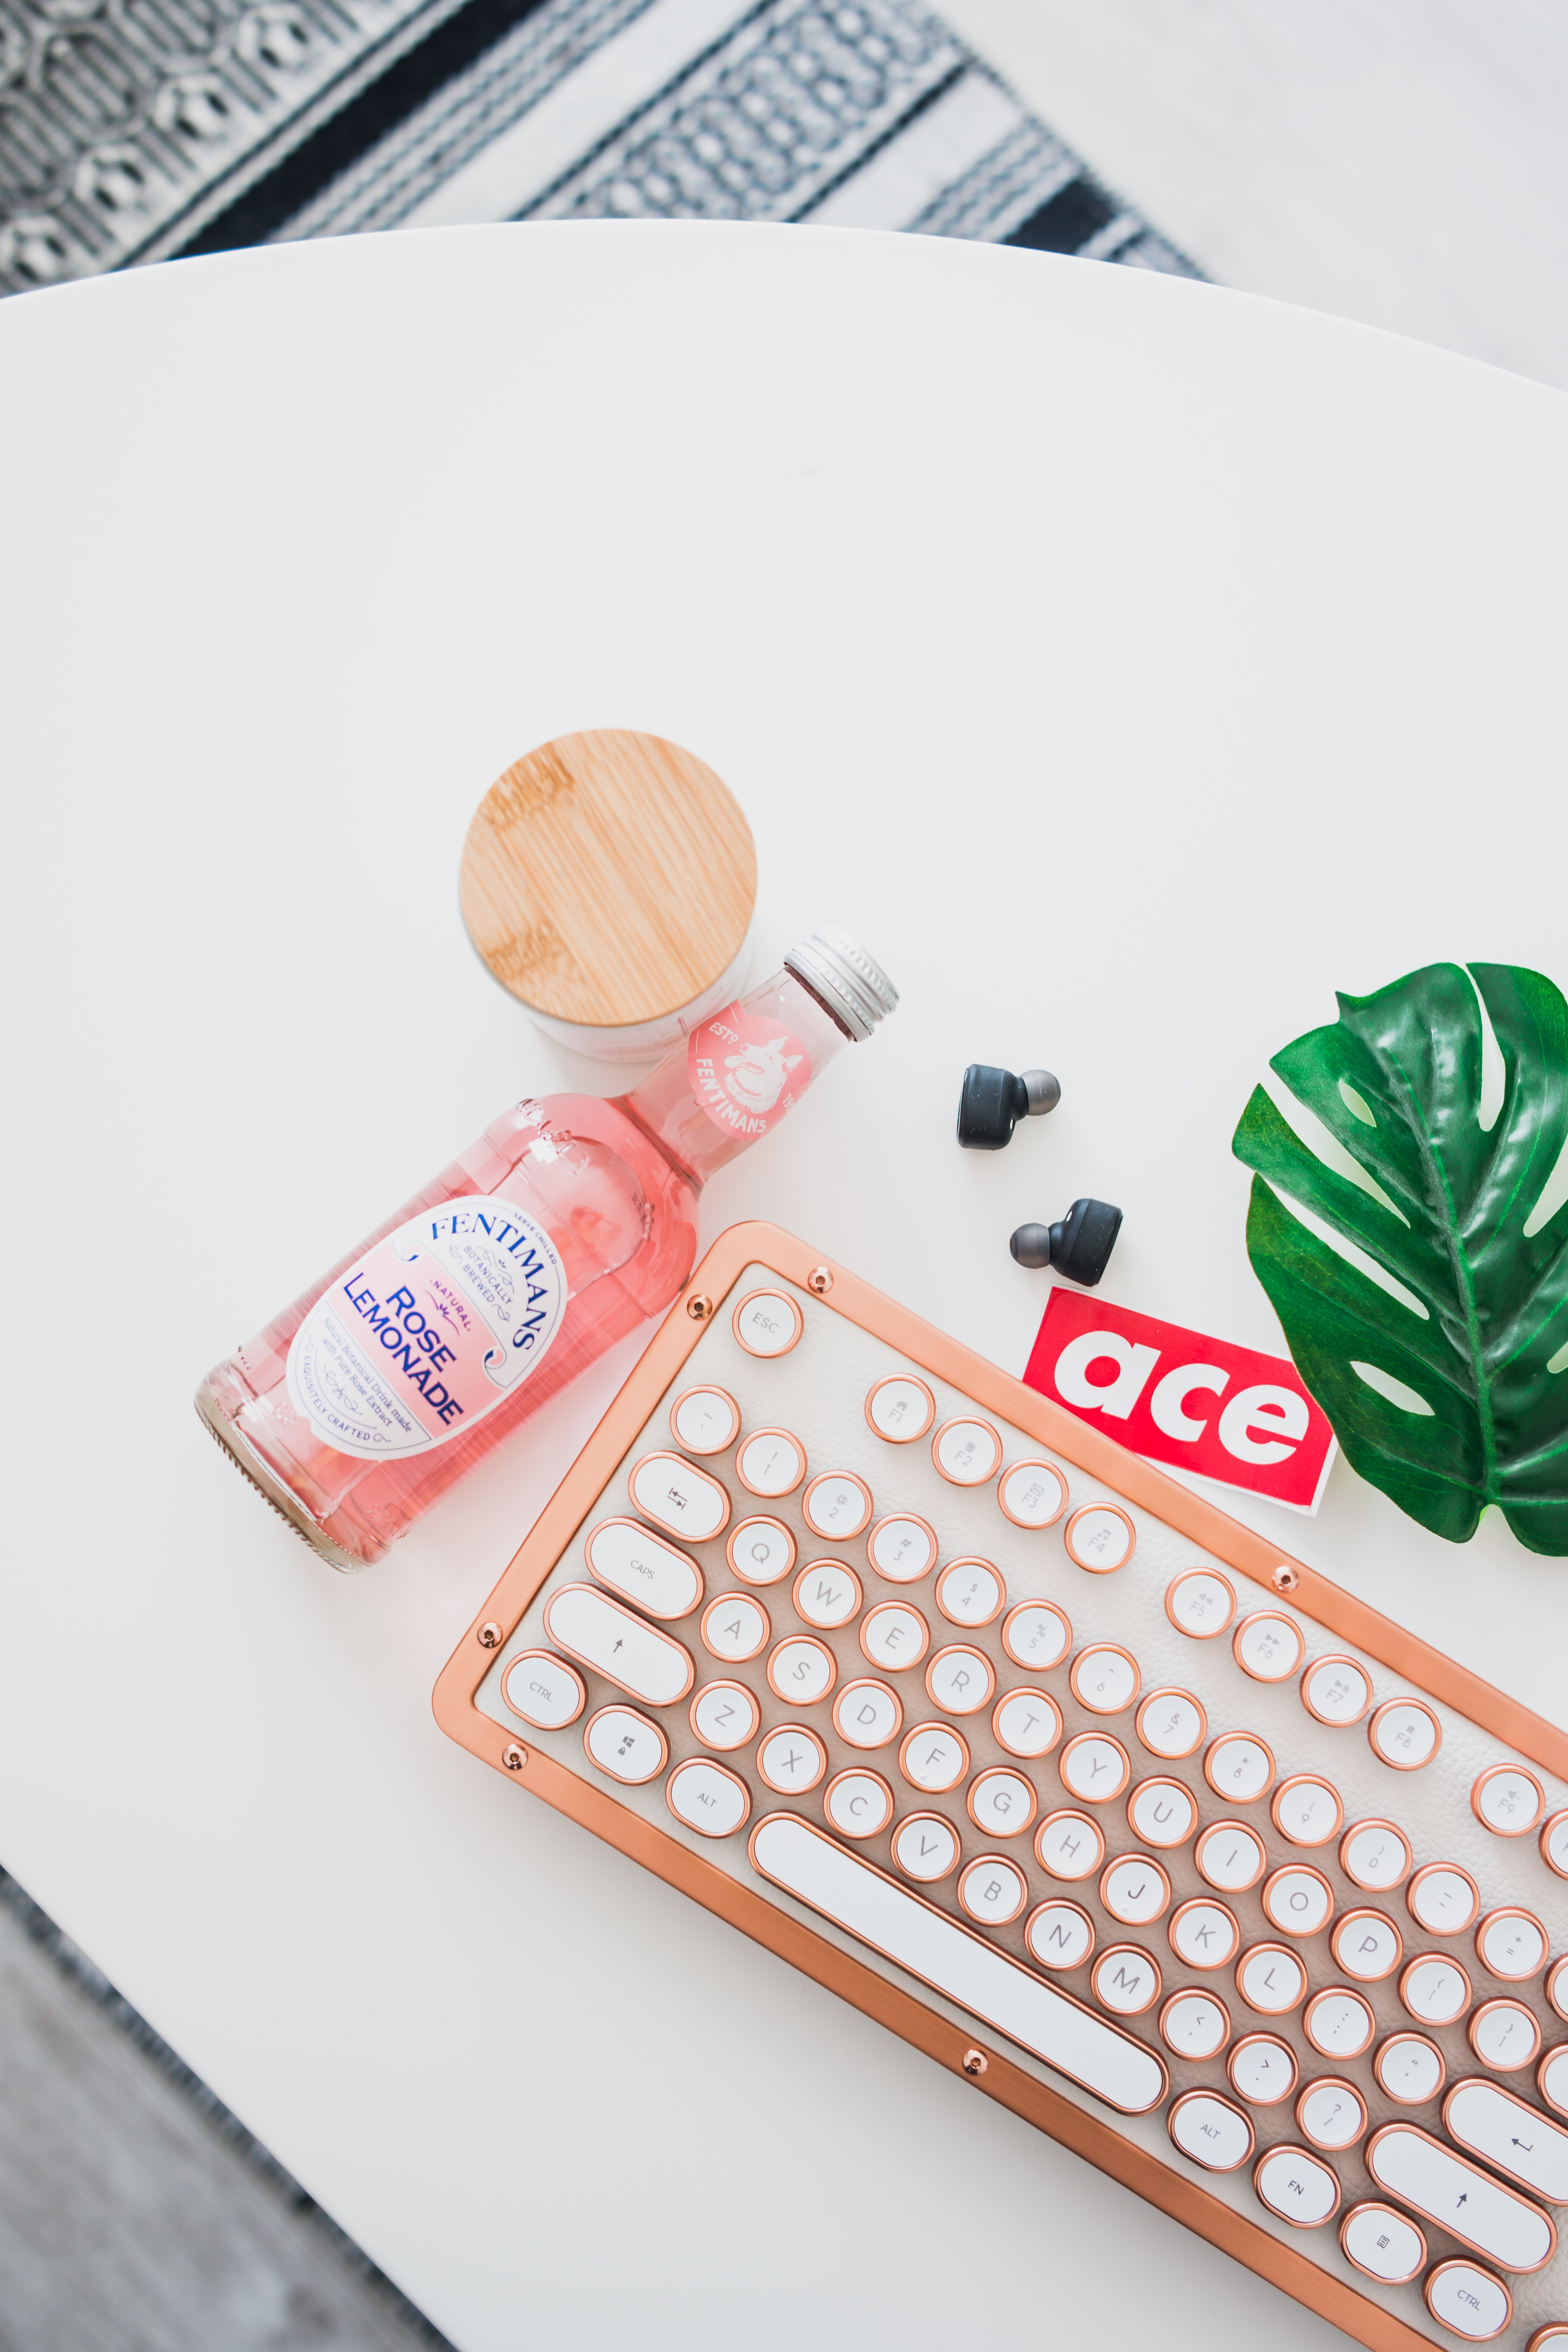 close-up photo of white and brown keyboard and pink bottle on white table